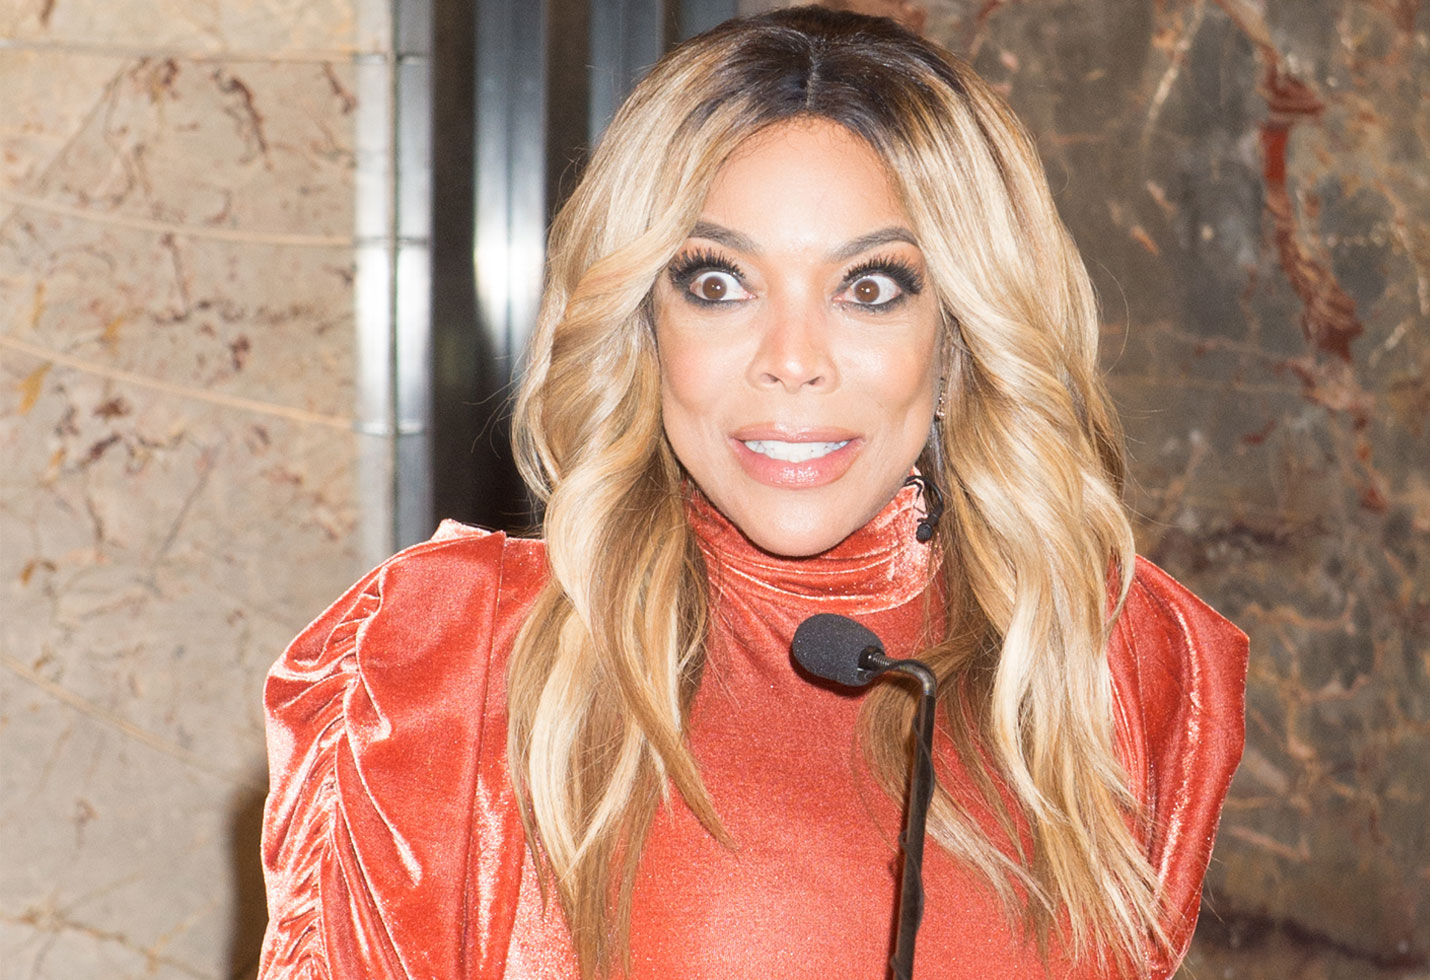 Wendy williams return explained health crisis cheating scandal